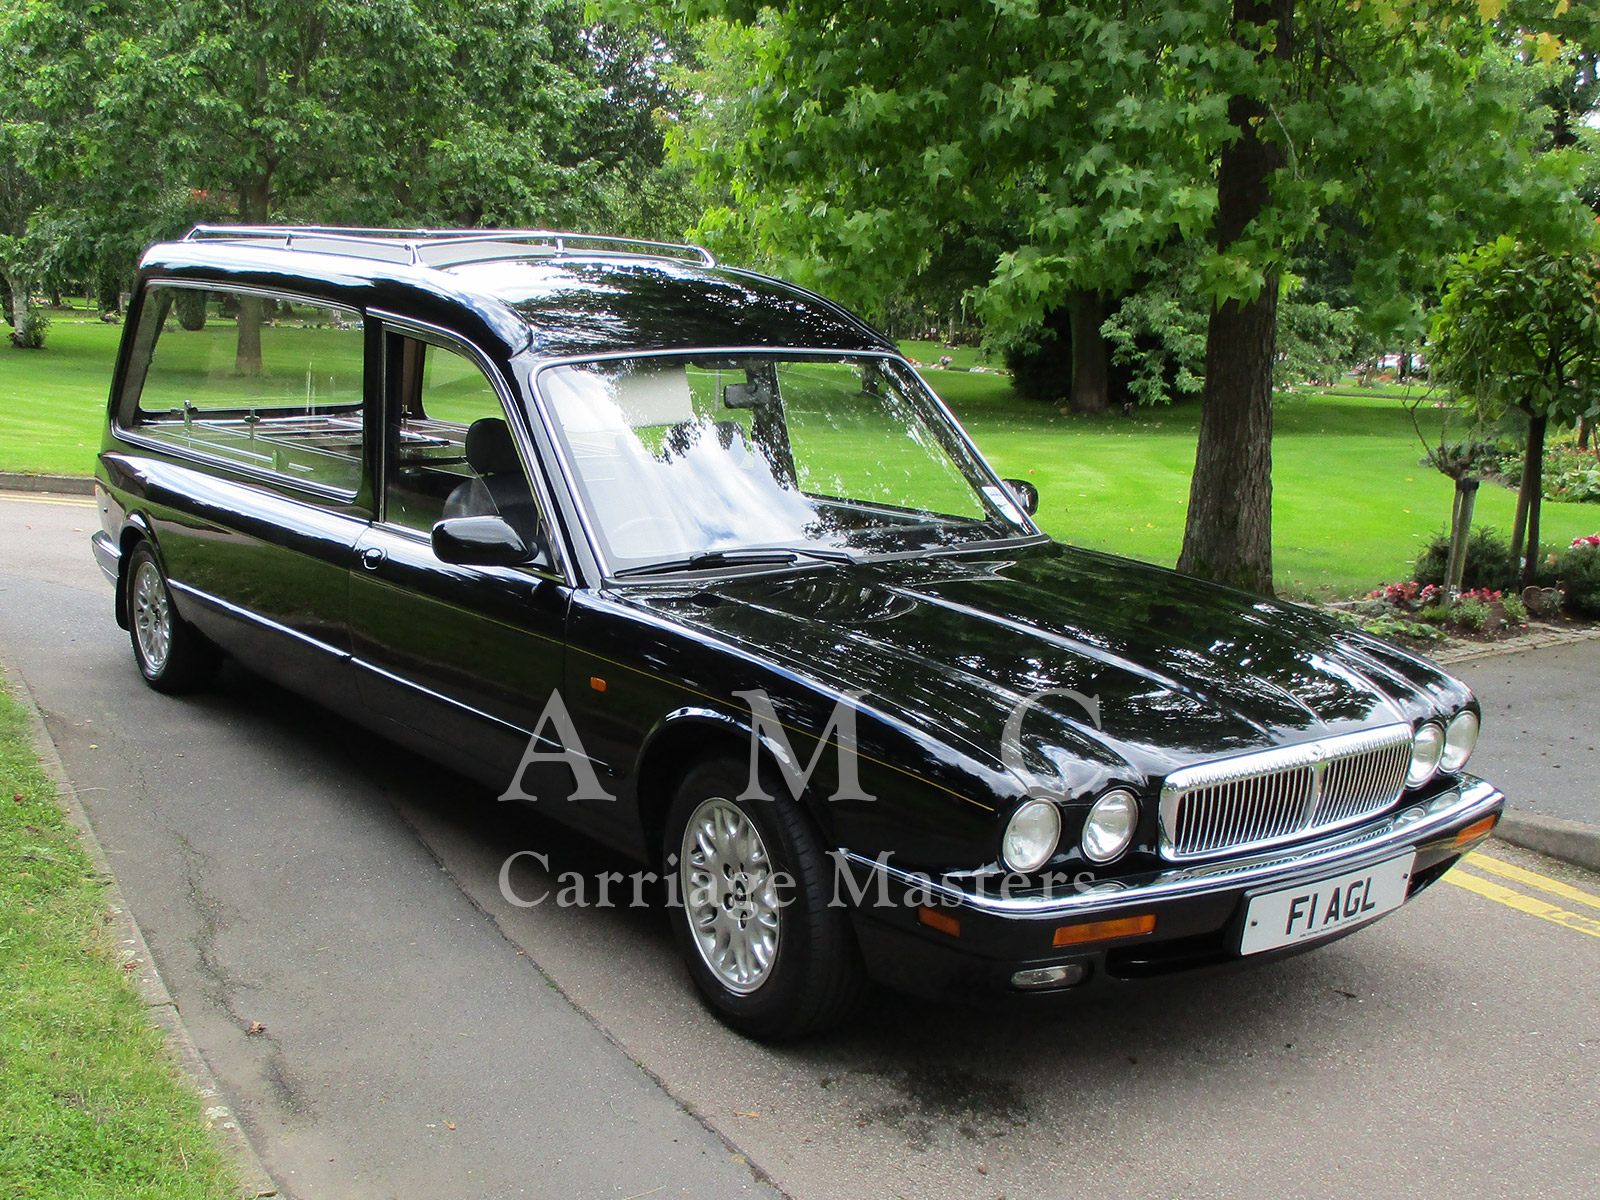 Black Daimler Jaguar XJ X300 Model Hearse